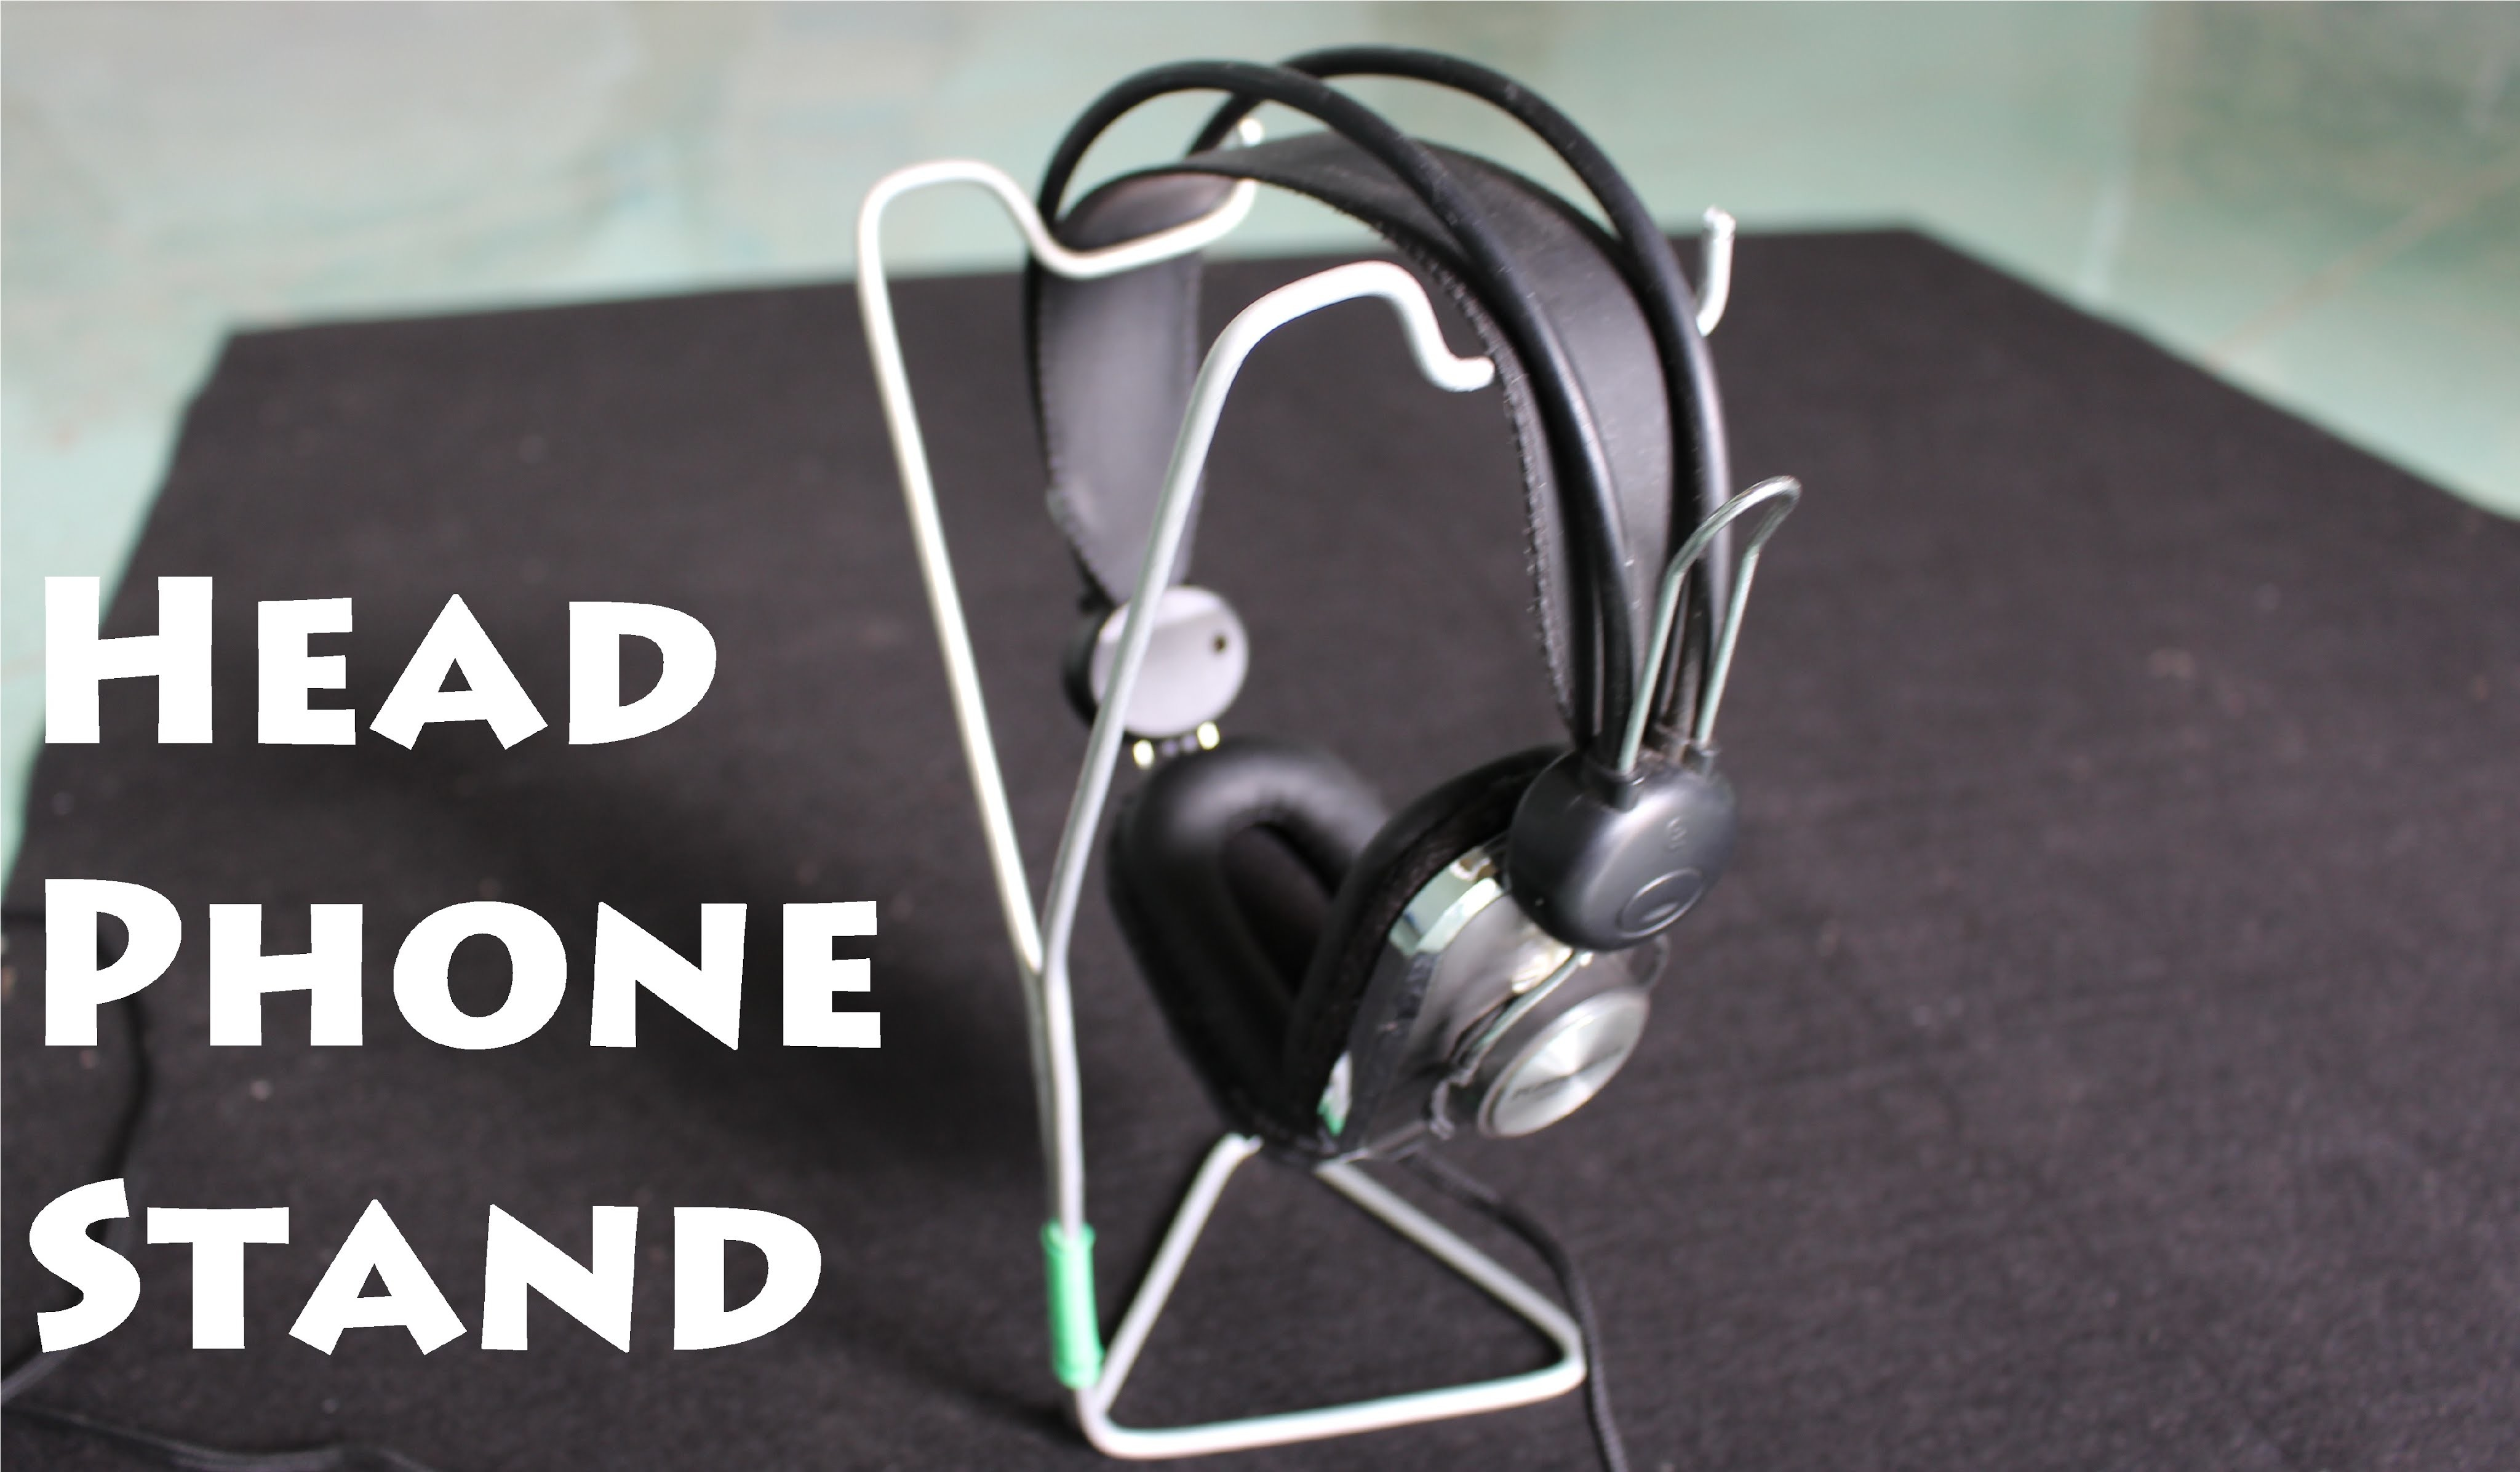 How to make a Headphone Stand using a Clothes Hanger